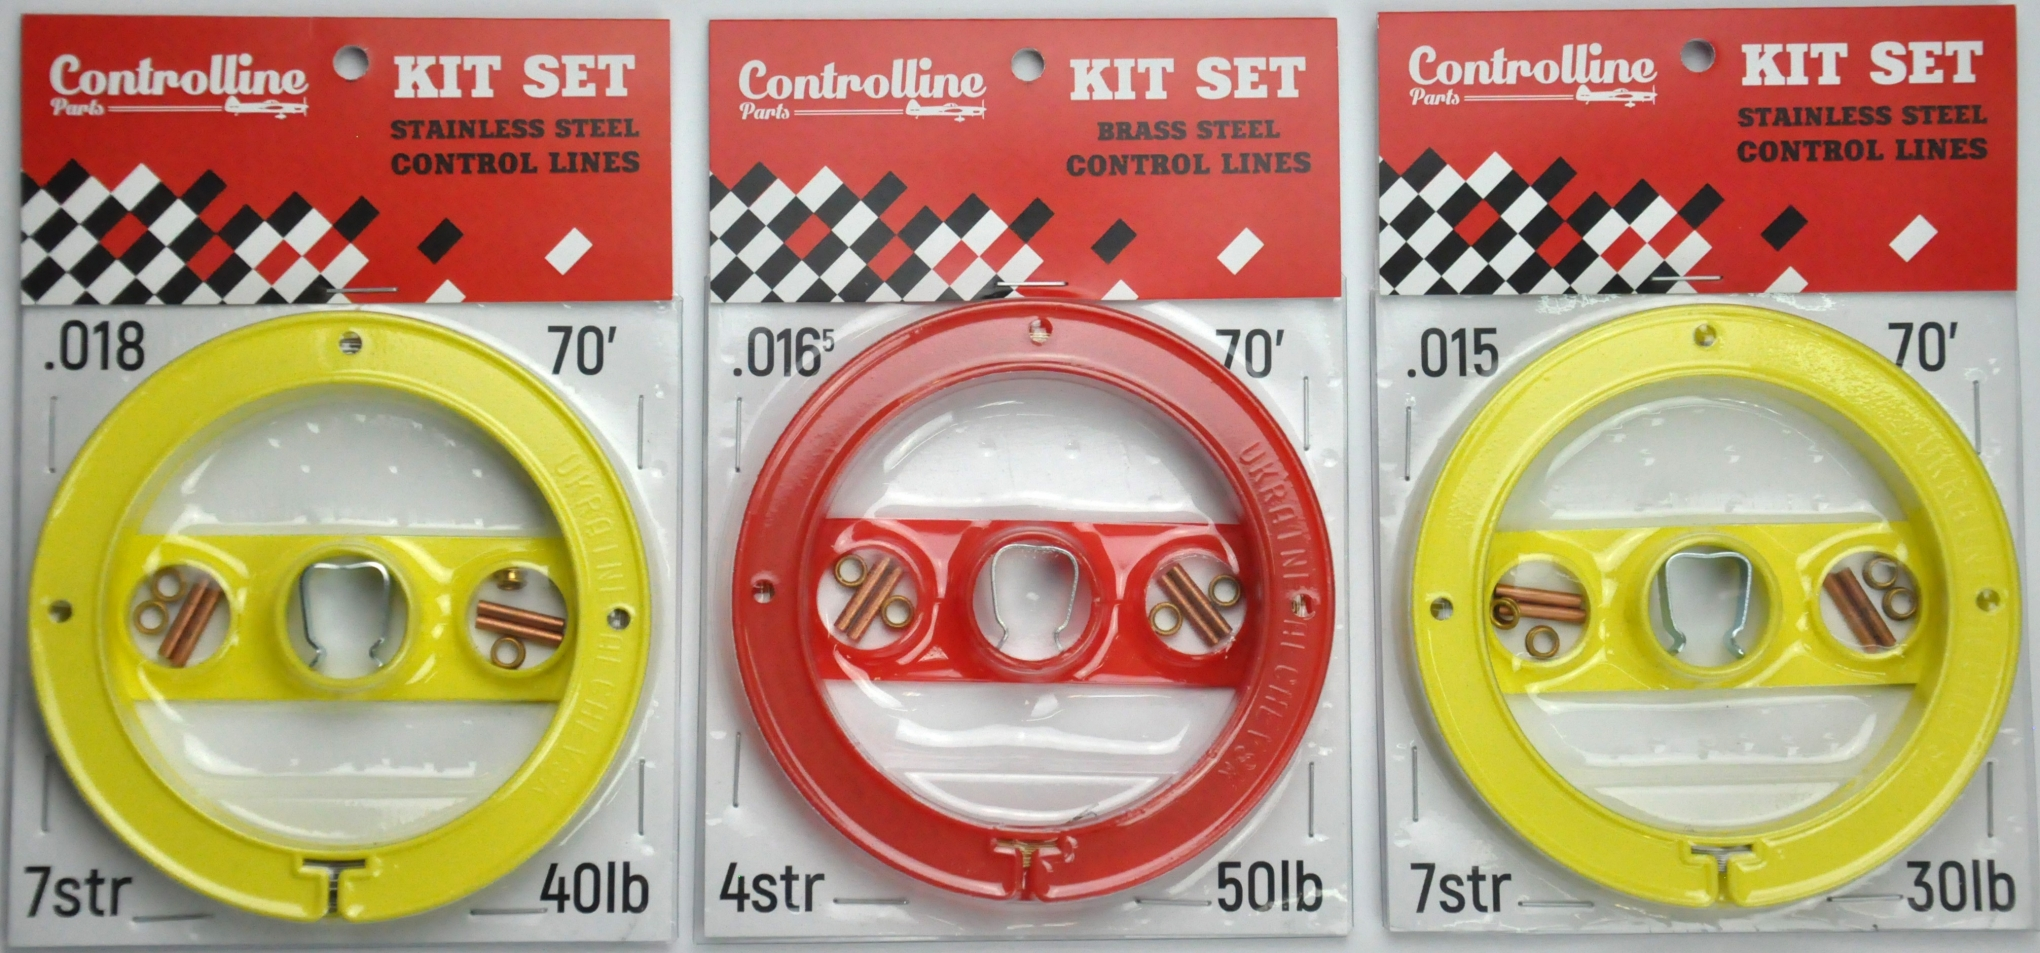 KIT SET CONTROL LINES BRASS STEEL 0.0165 IN 70 FEET 4 STRAND 50 LB